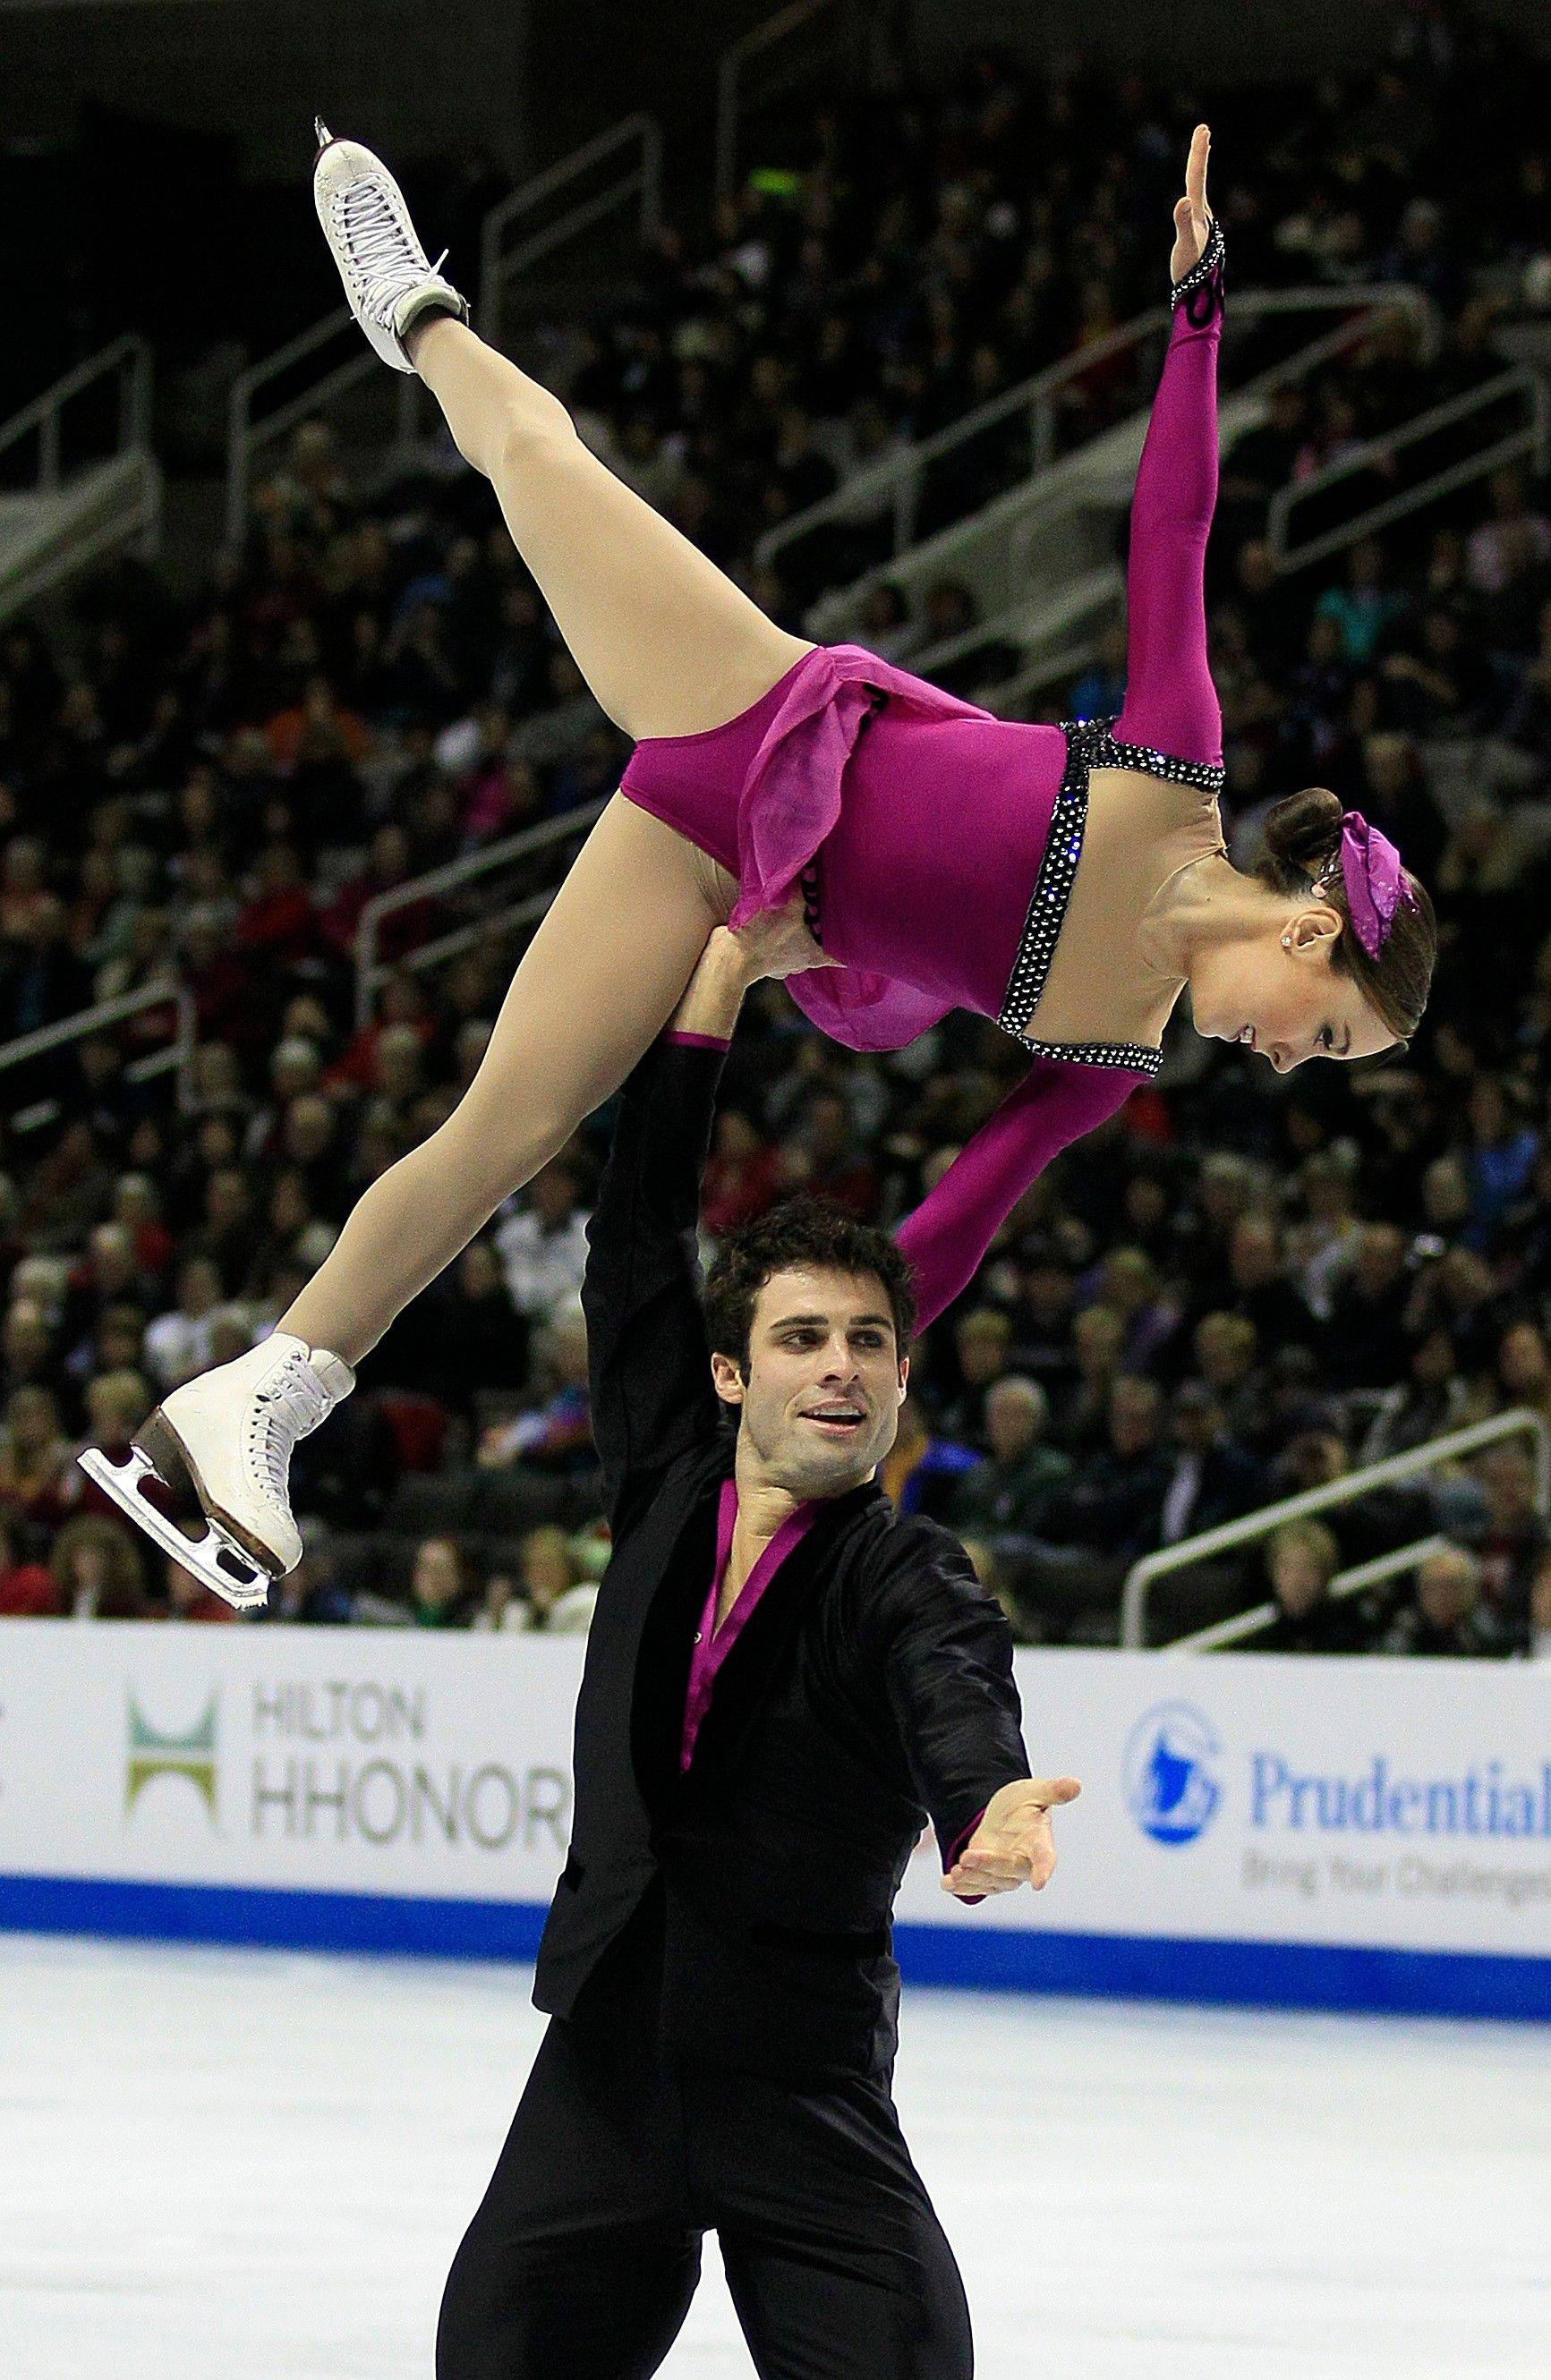 This difficult one-arm lift helped Mary Beth Marley of Downers Grove and Rockne Brubaker of Algonquin finish second at the U.S. Figure Skating Championships in San Jose, Calif., Sunday.